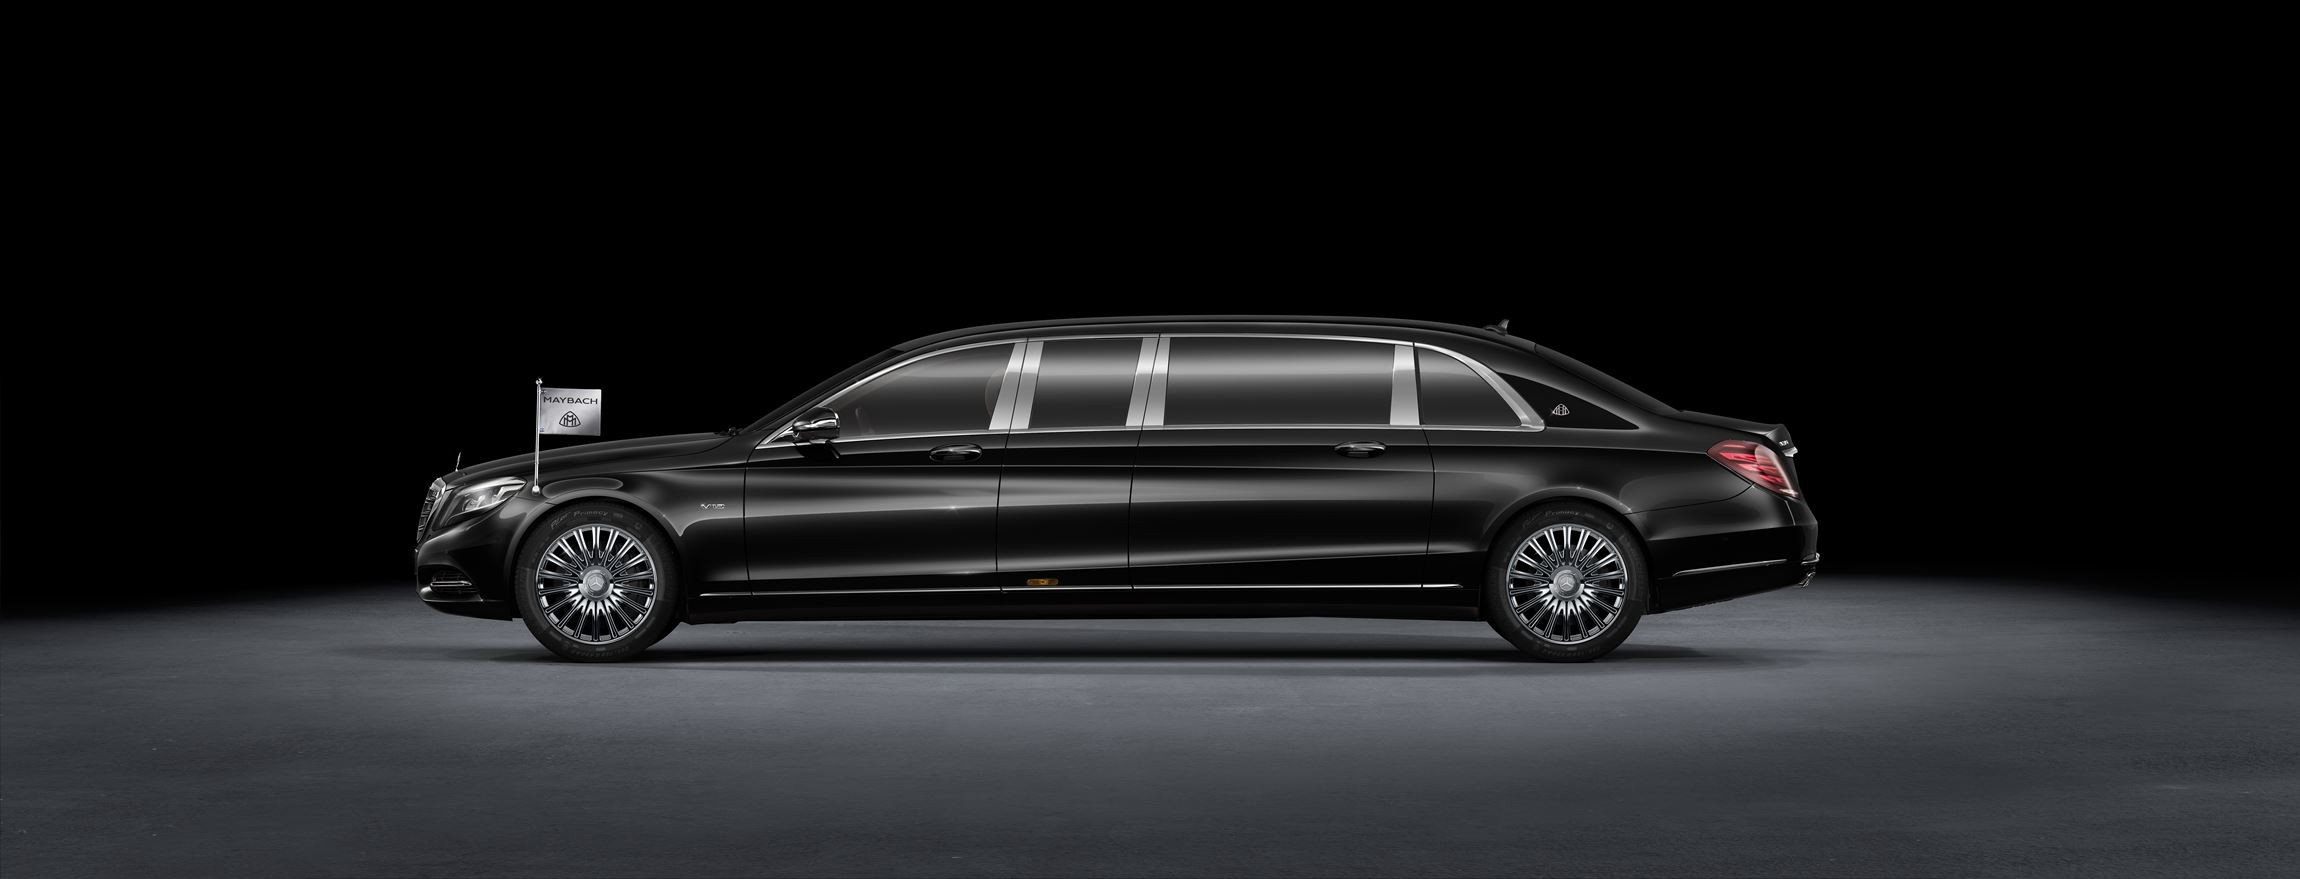 http://www.car-revs-daily.com/wp-content/uploads/2016-Mercedes-Maybach-PULLMAN-Limo-15.jpg